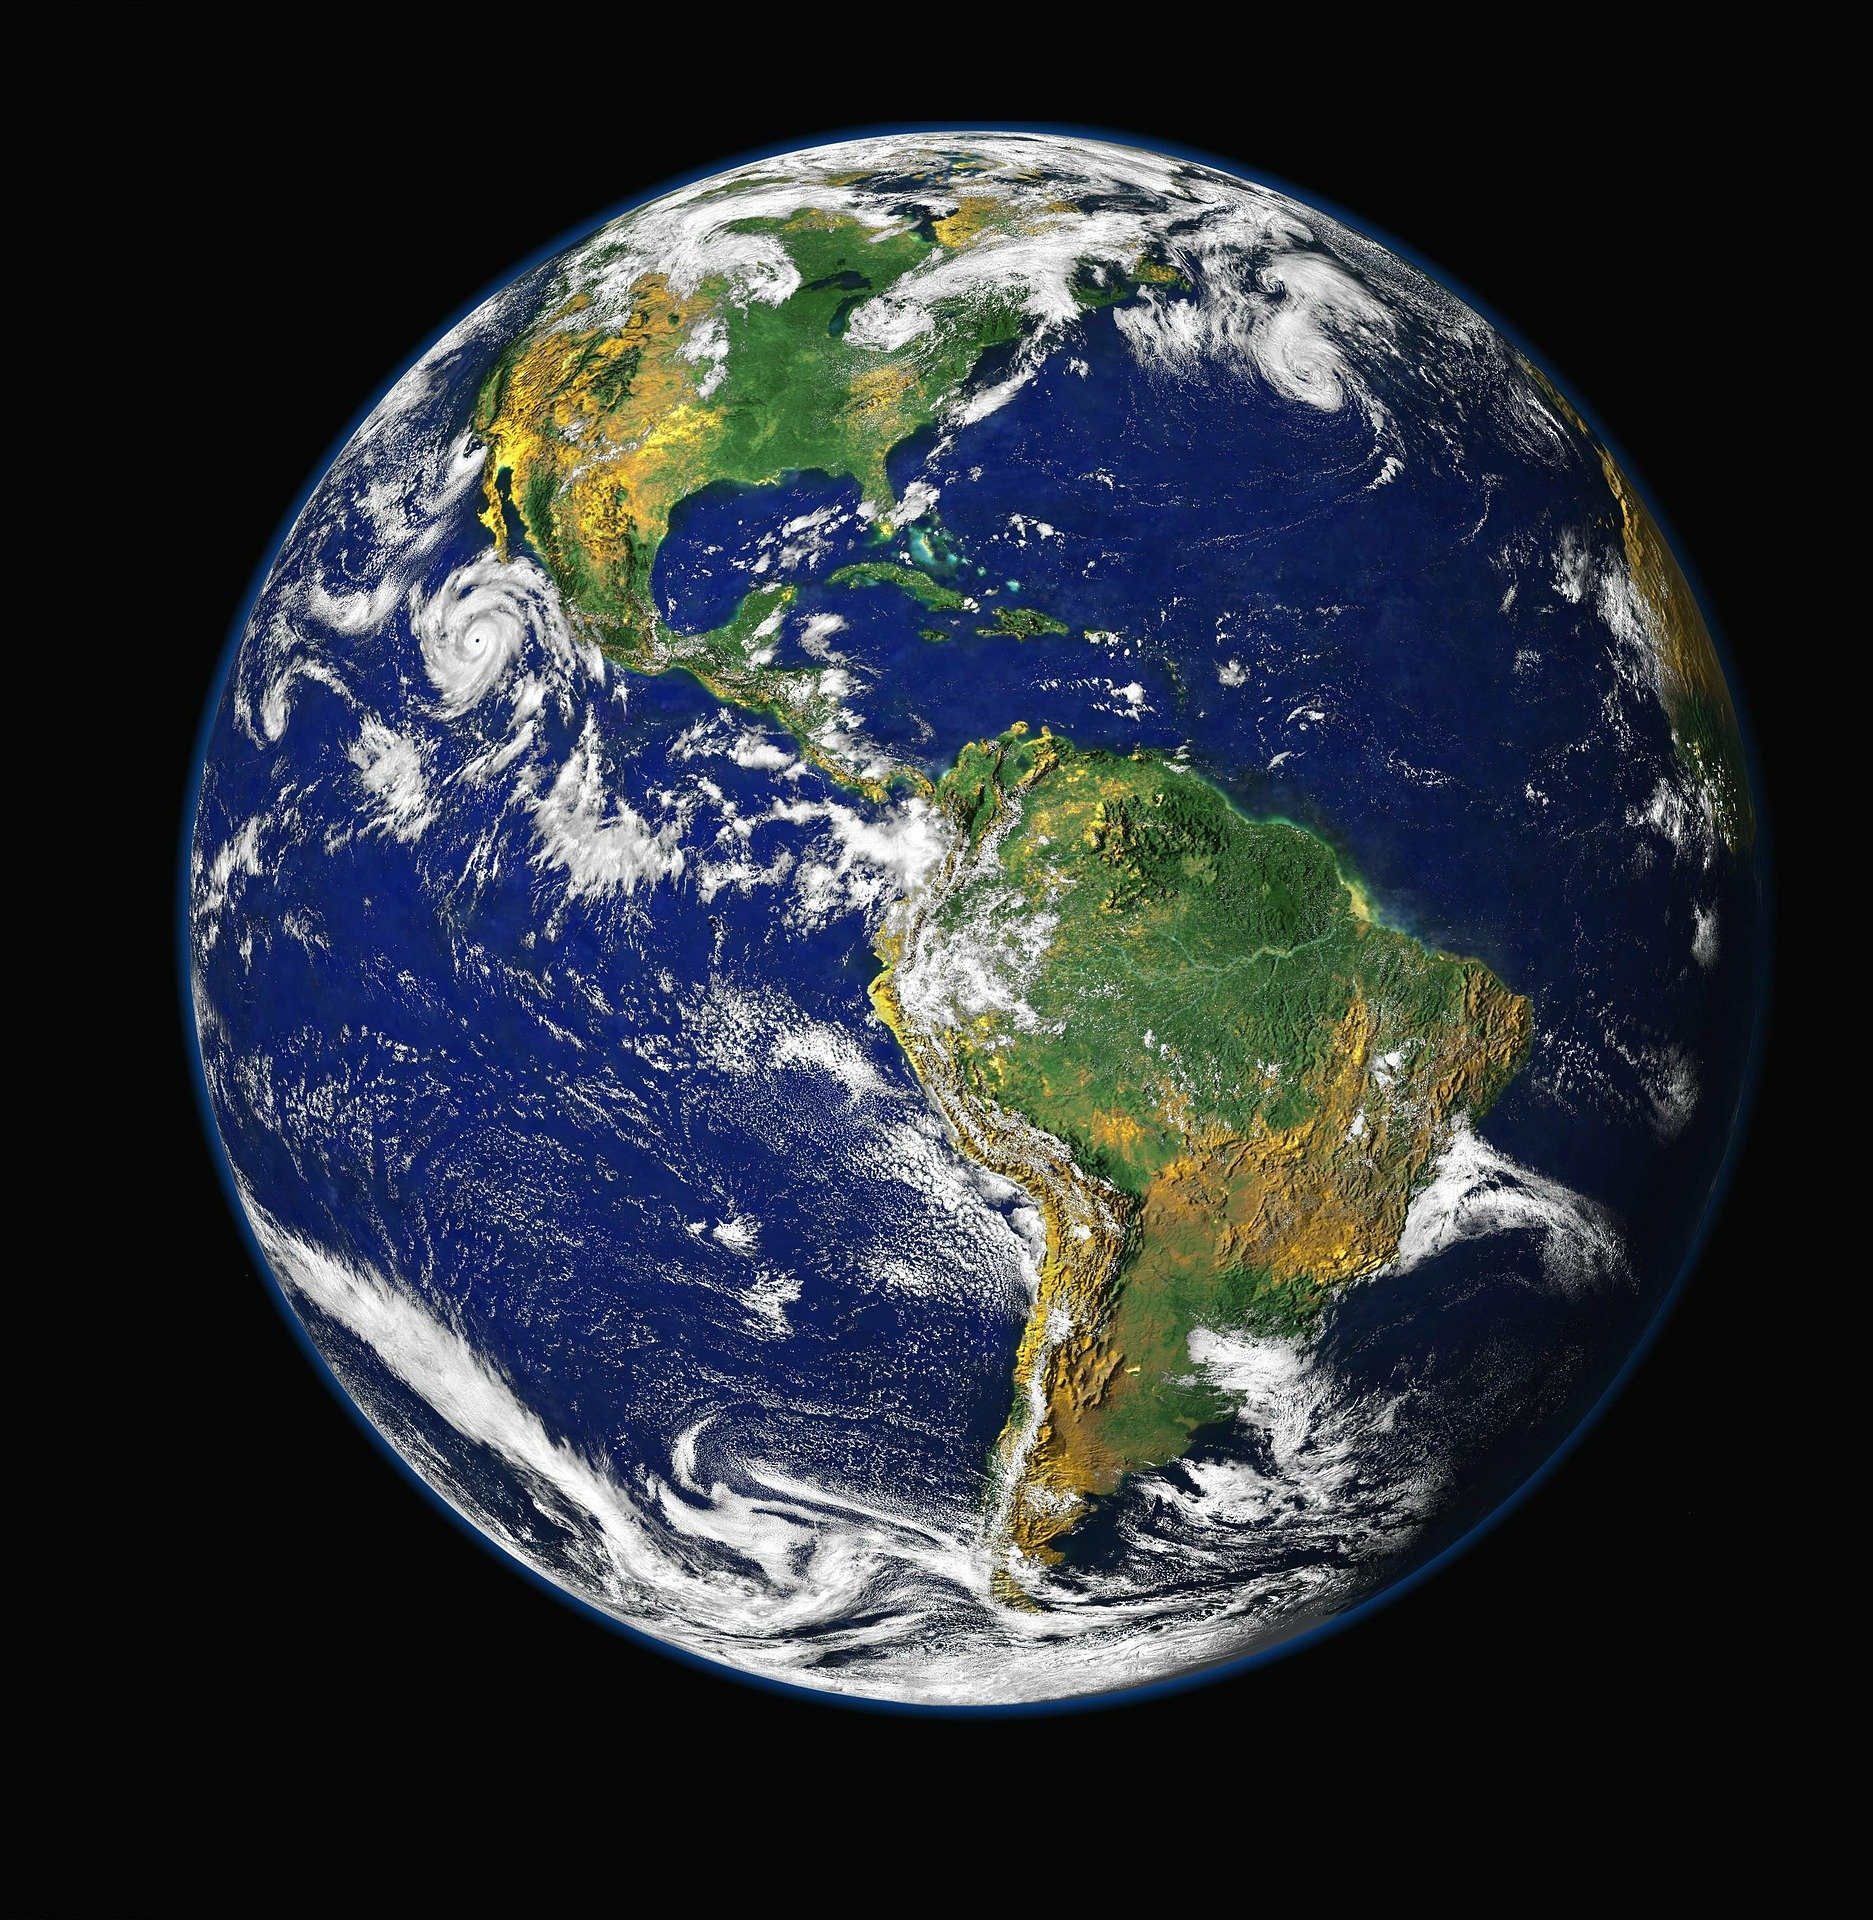 background scene - earth-11015_1920